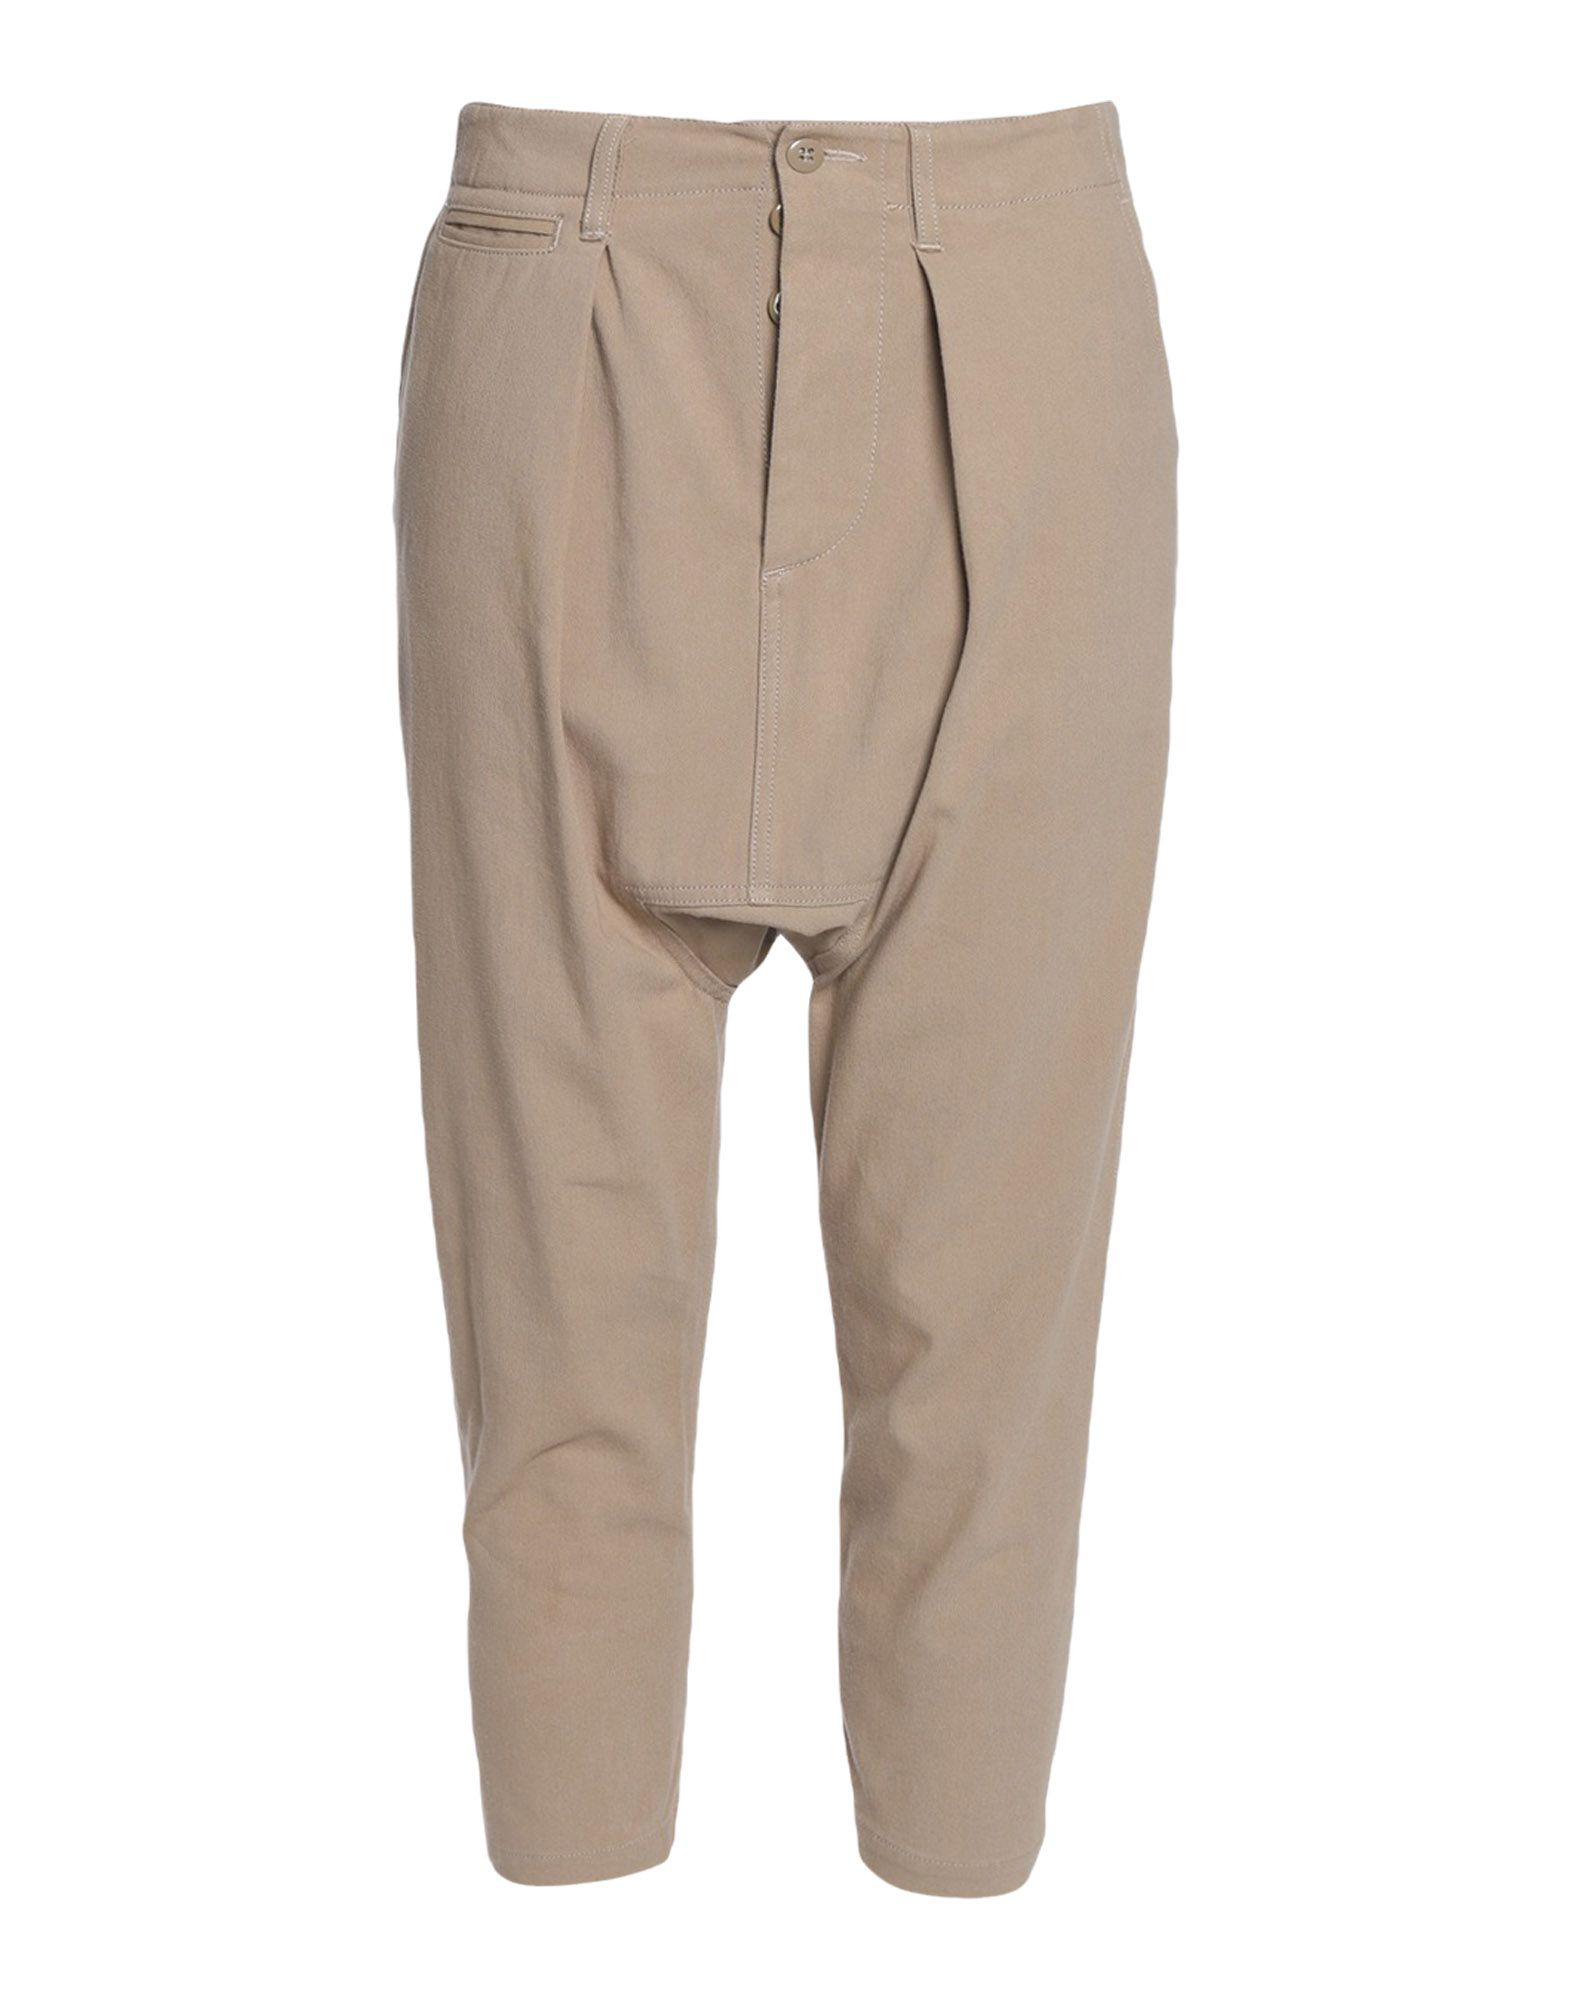 NLST Cropped Pants & Culottes in Beige